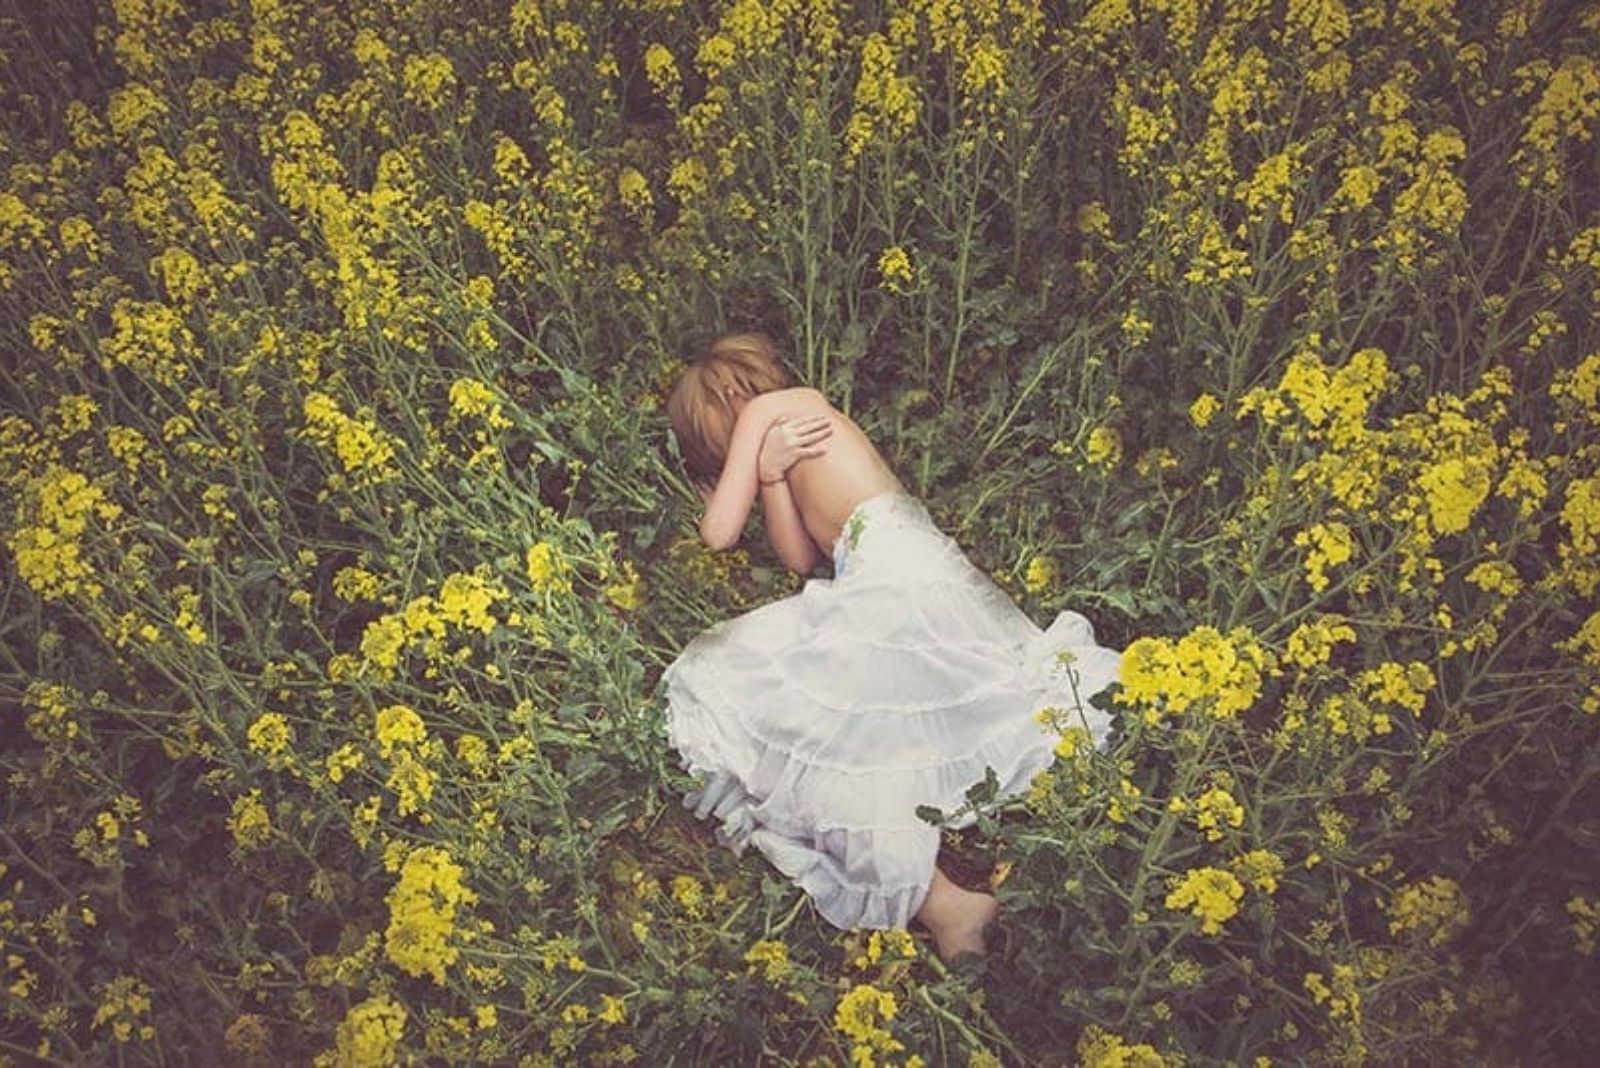 the woman lies in a field of flowers